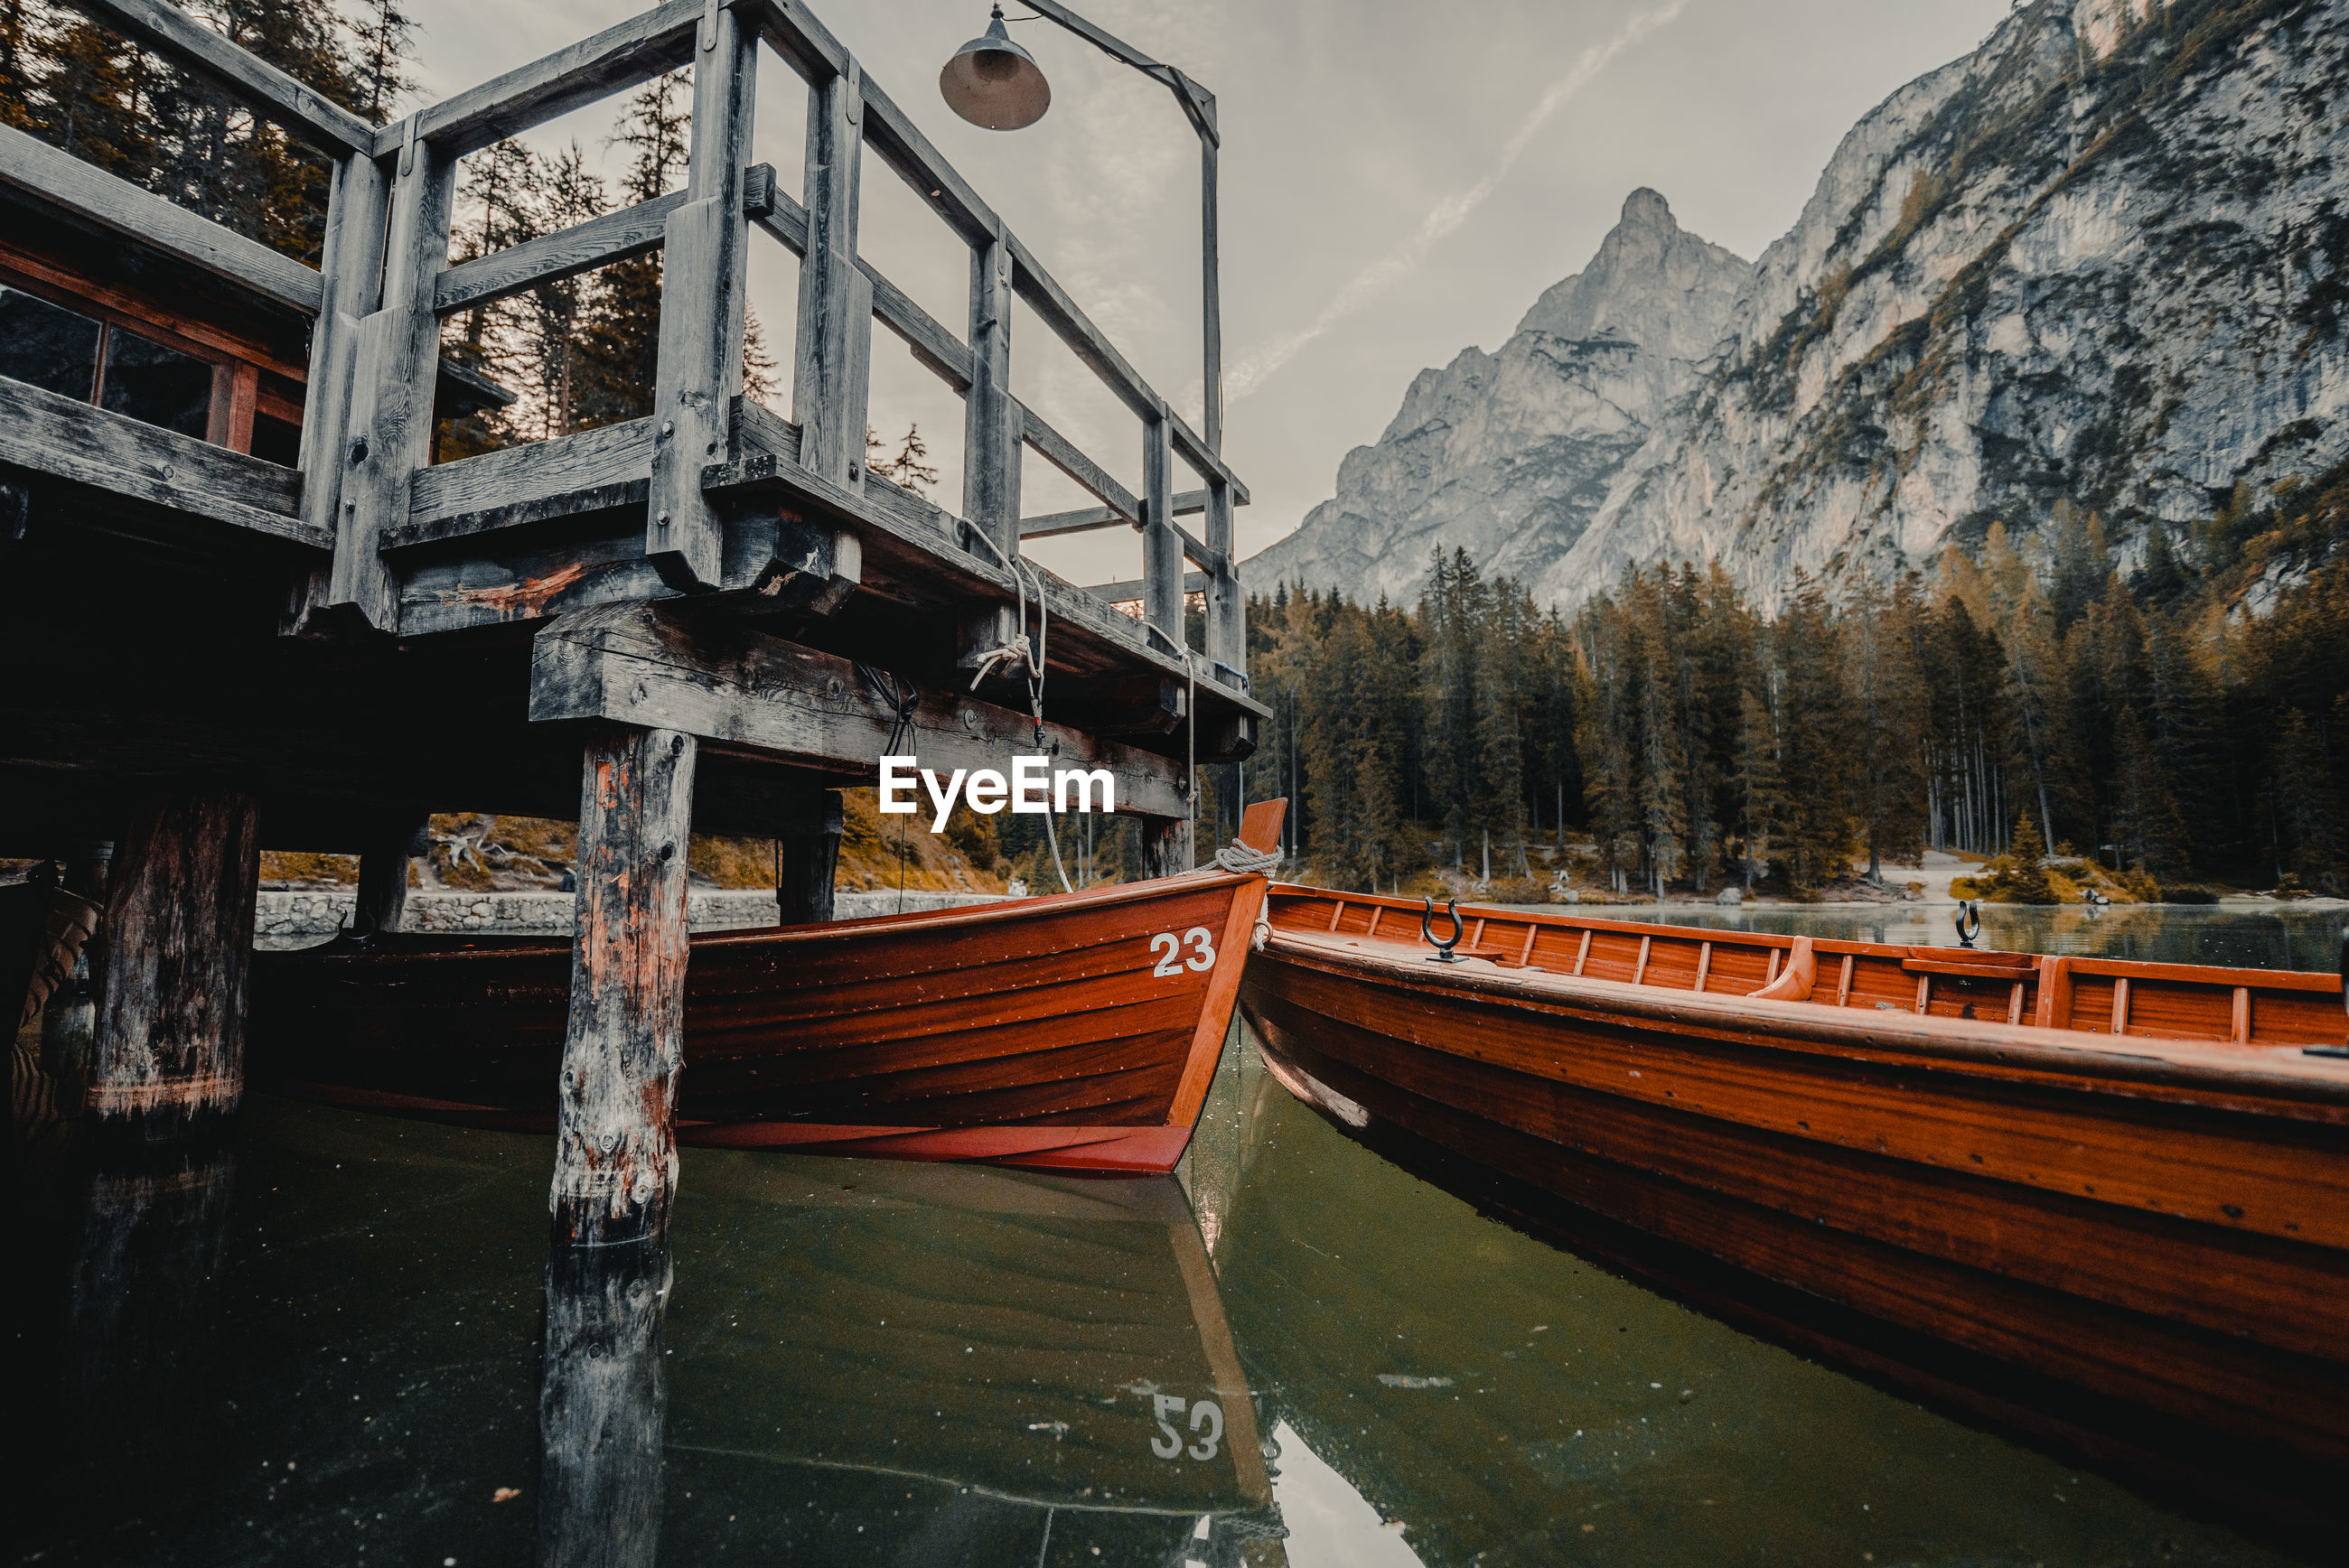 HIGH ANGLE VIEW OF BOATS IN CANAL BY MOUNTAIN